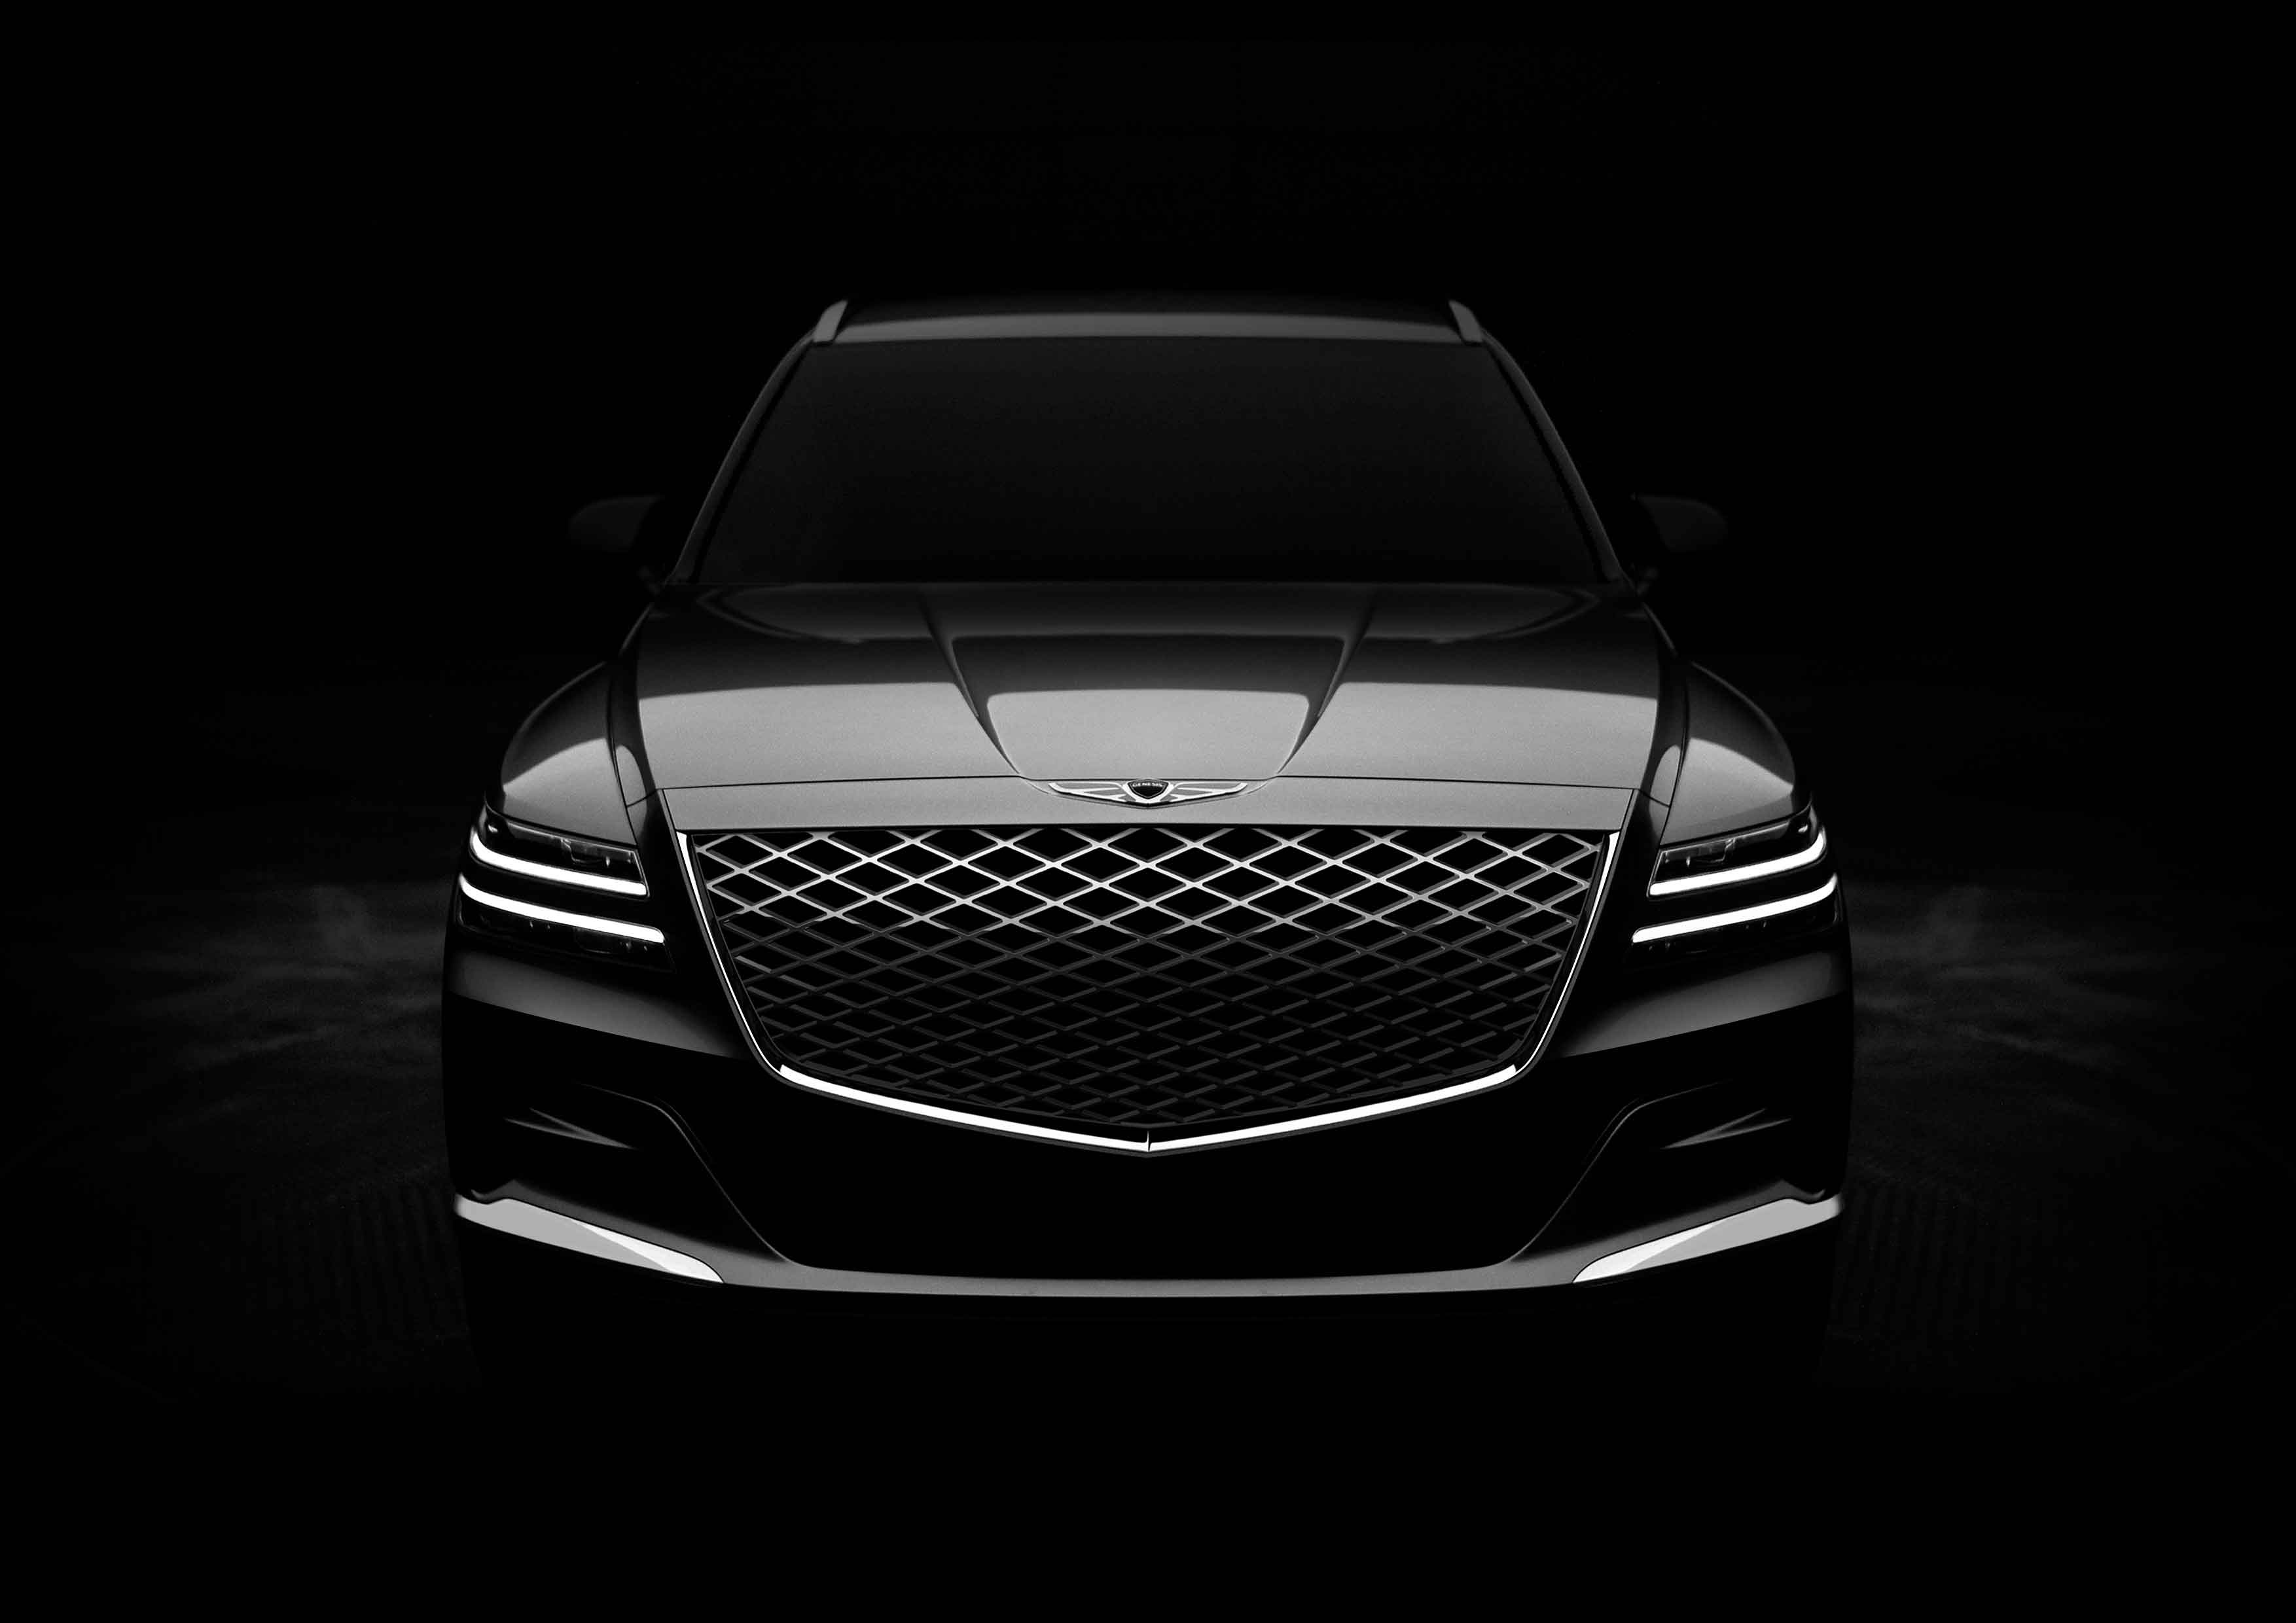 Genesis Luxury Flagship SUV, The Gv80, Prepares For Its Middle East & Africa Debut